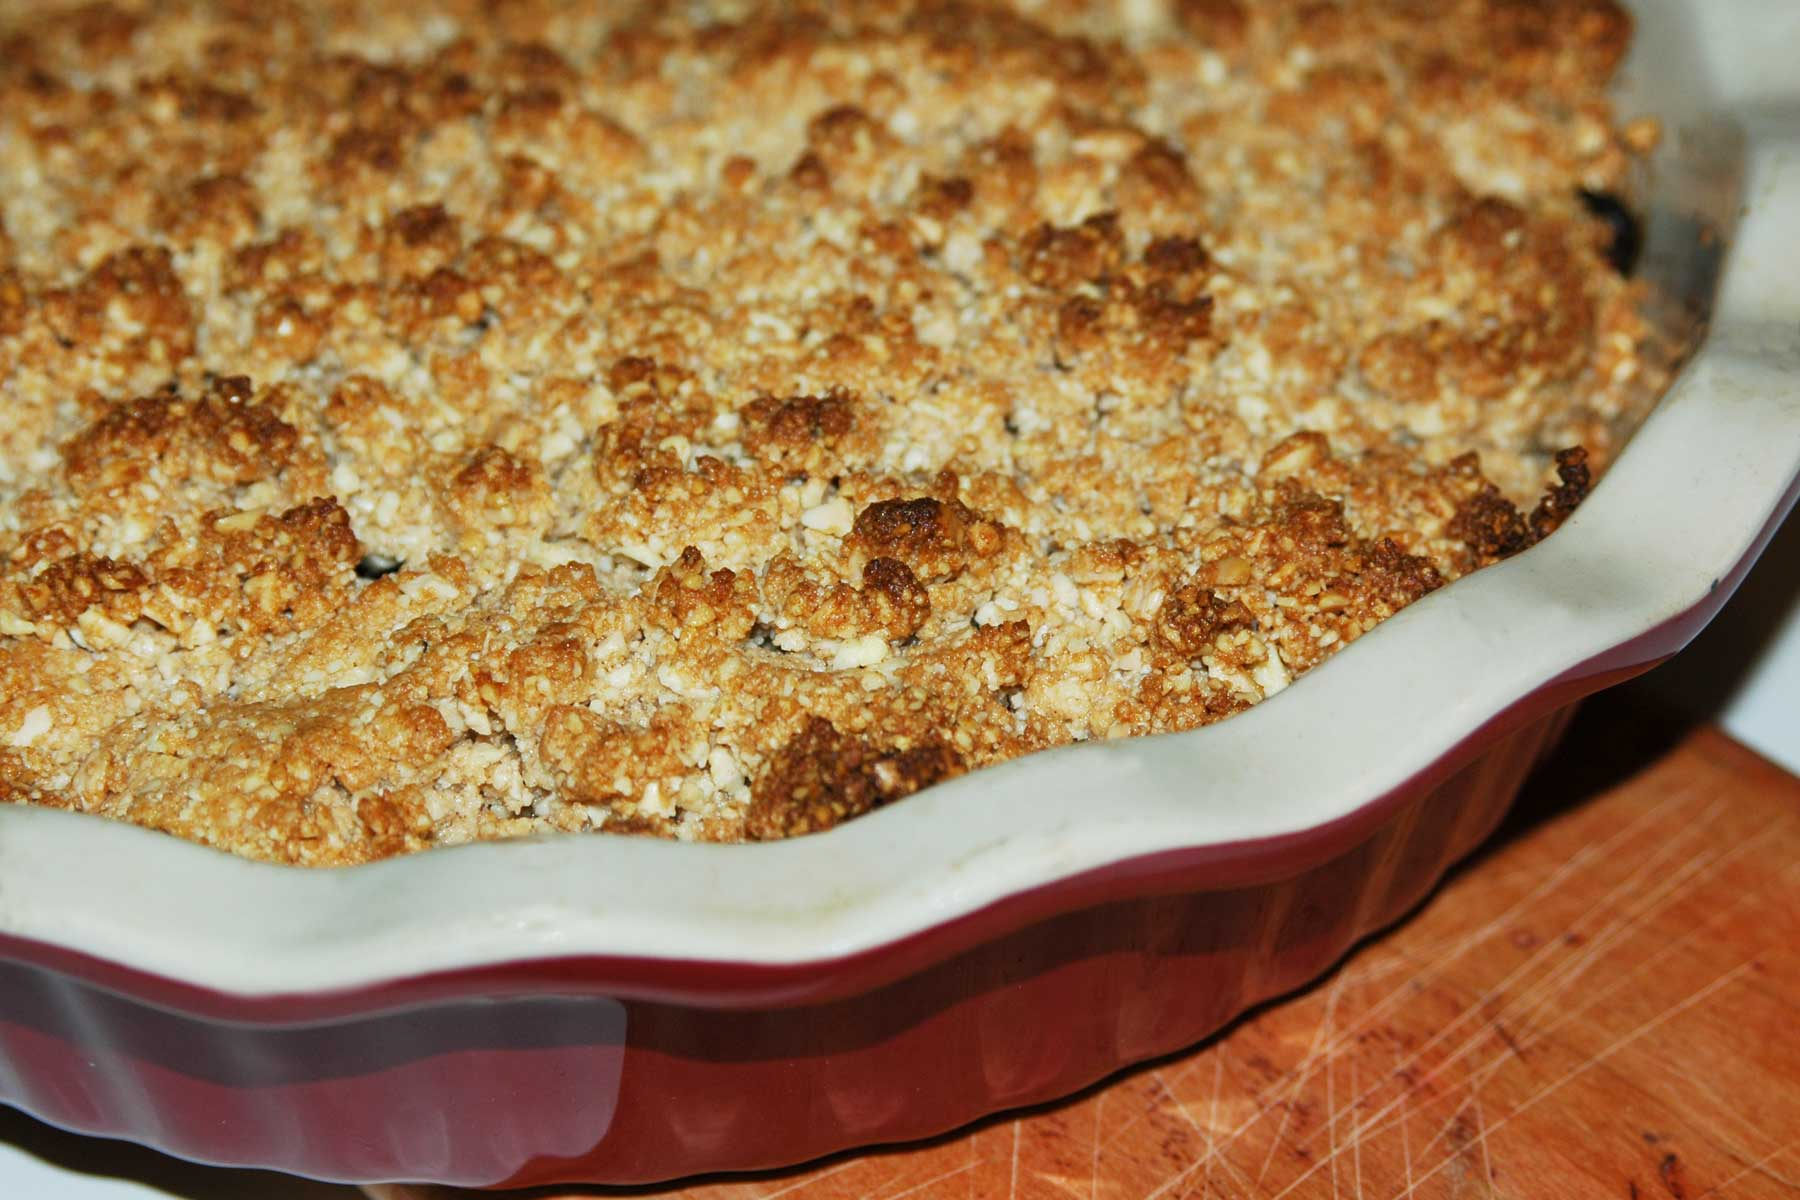 gluten-free, grain-free apple crisp